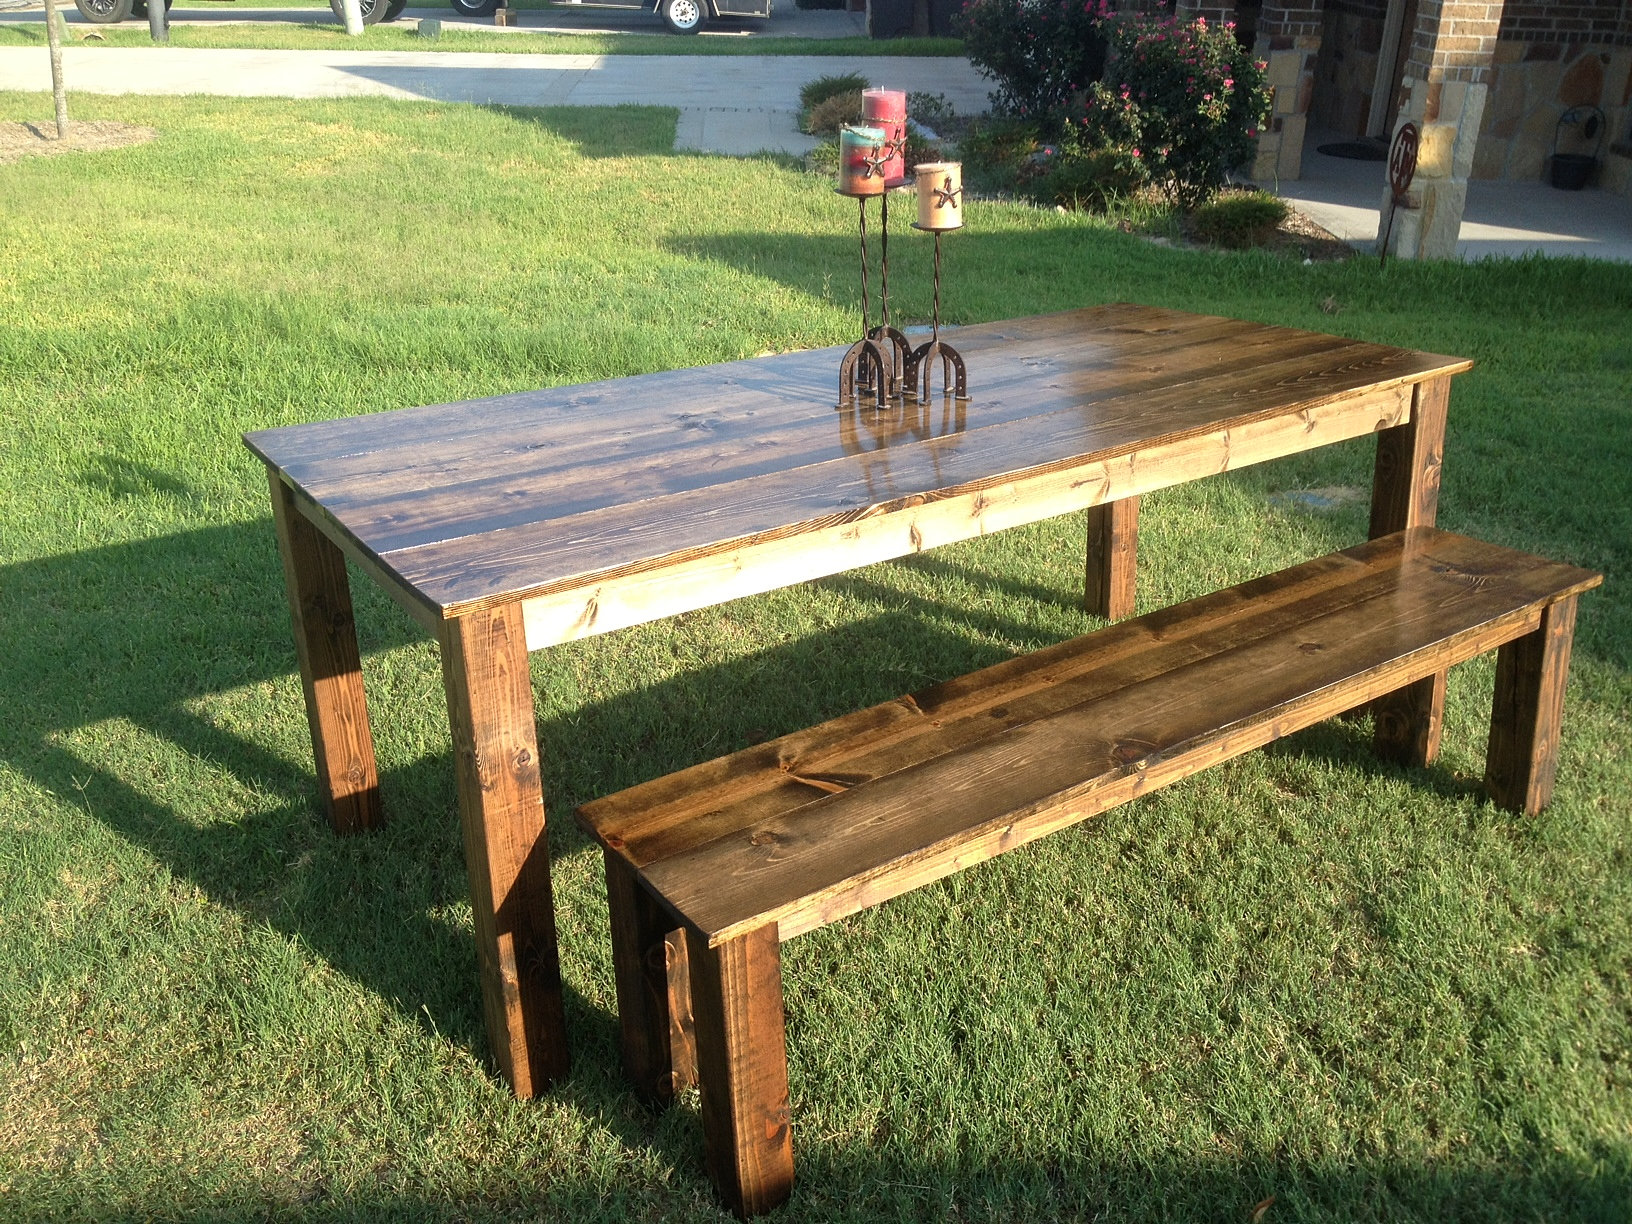 Diy Farmhouse Table Amp Bench Happiness Is Homemade Farmhouse Table With Bench | 2017 - 2018 Best Cars Reviews